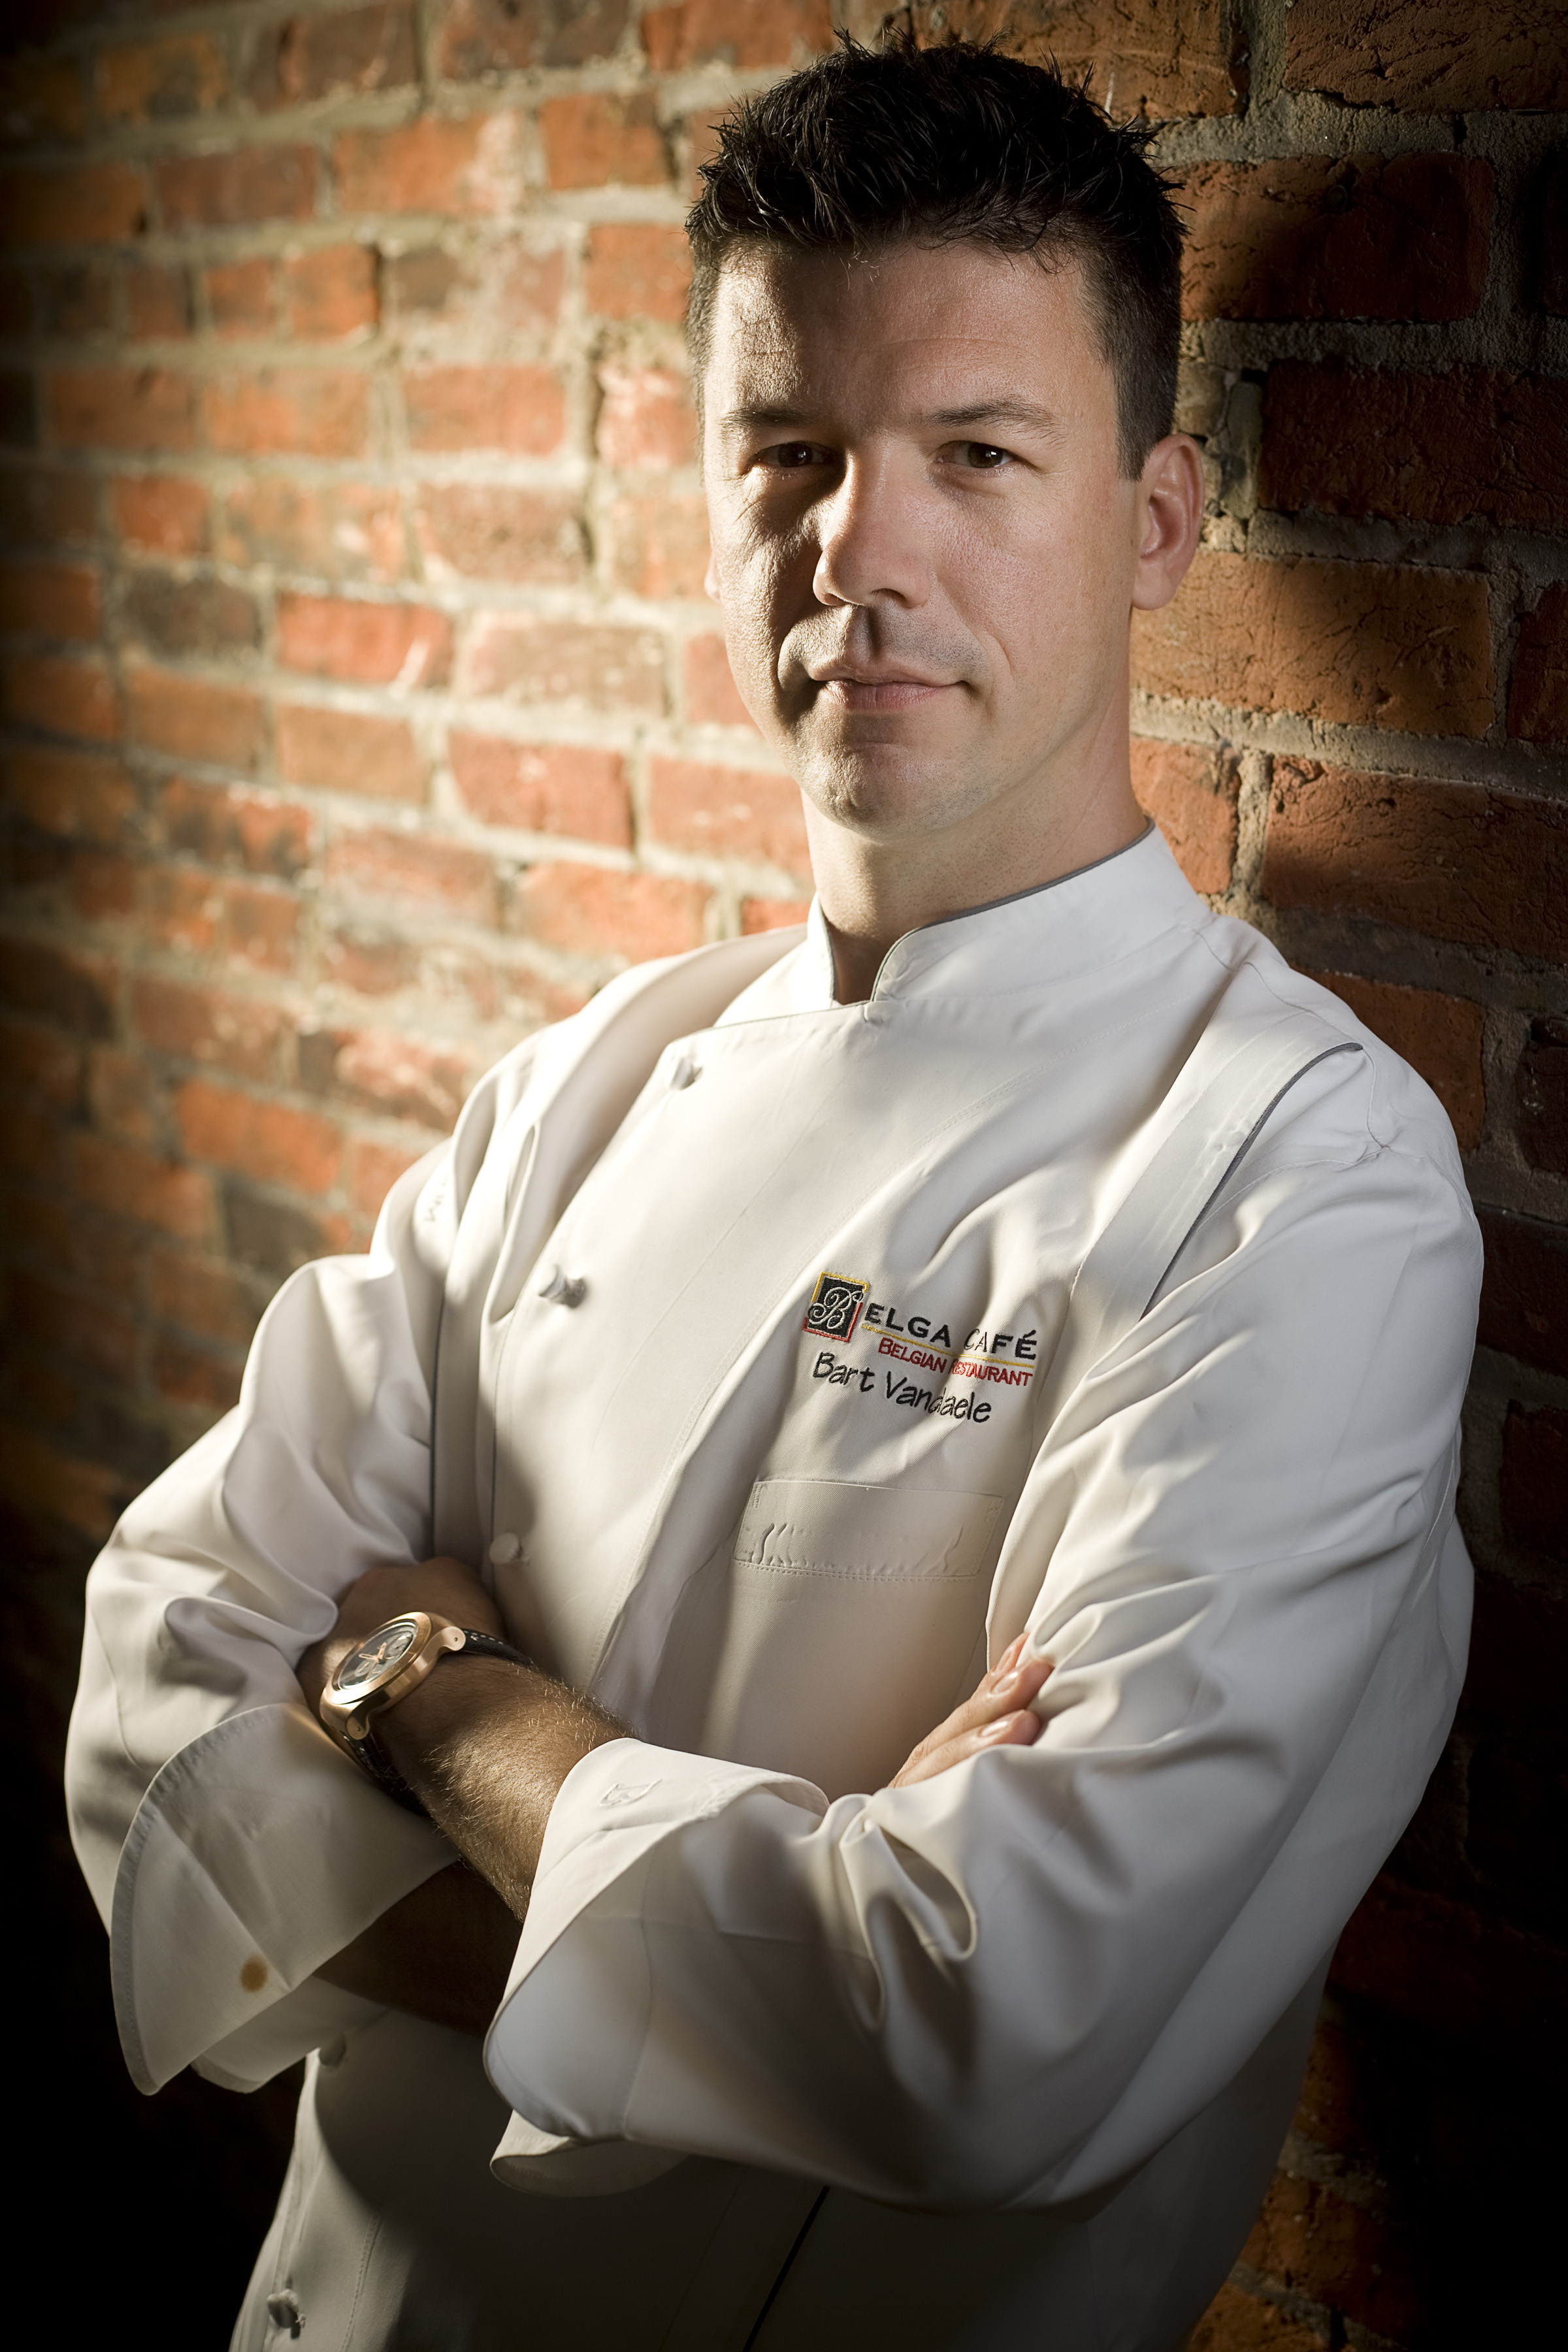 Chef Bart Vandal - Belga Cafe